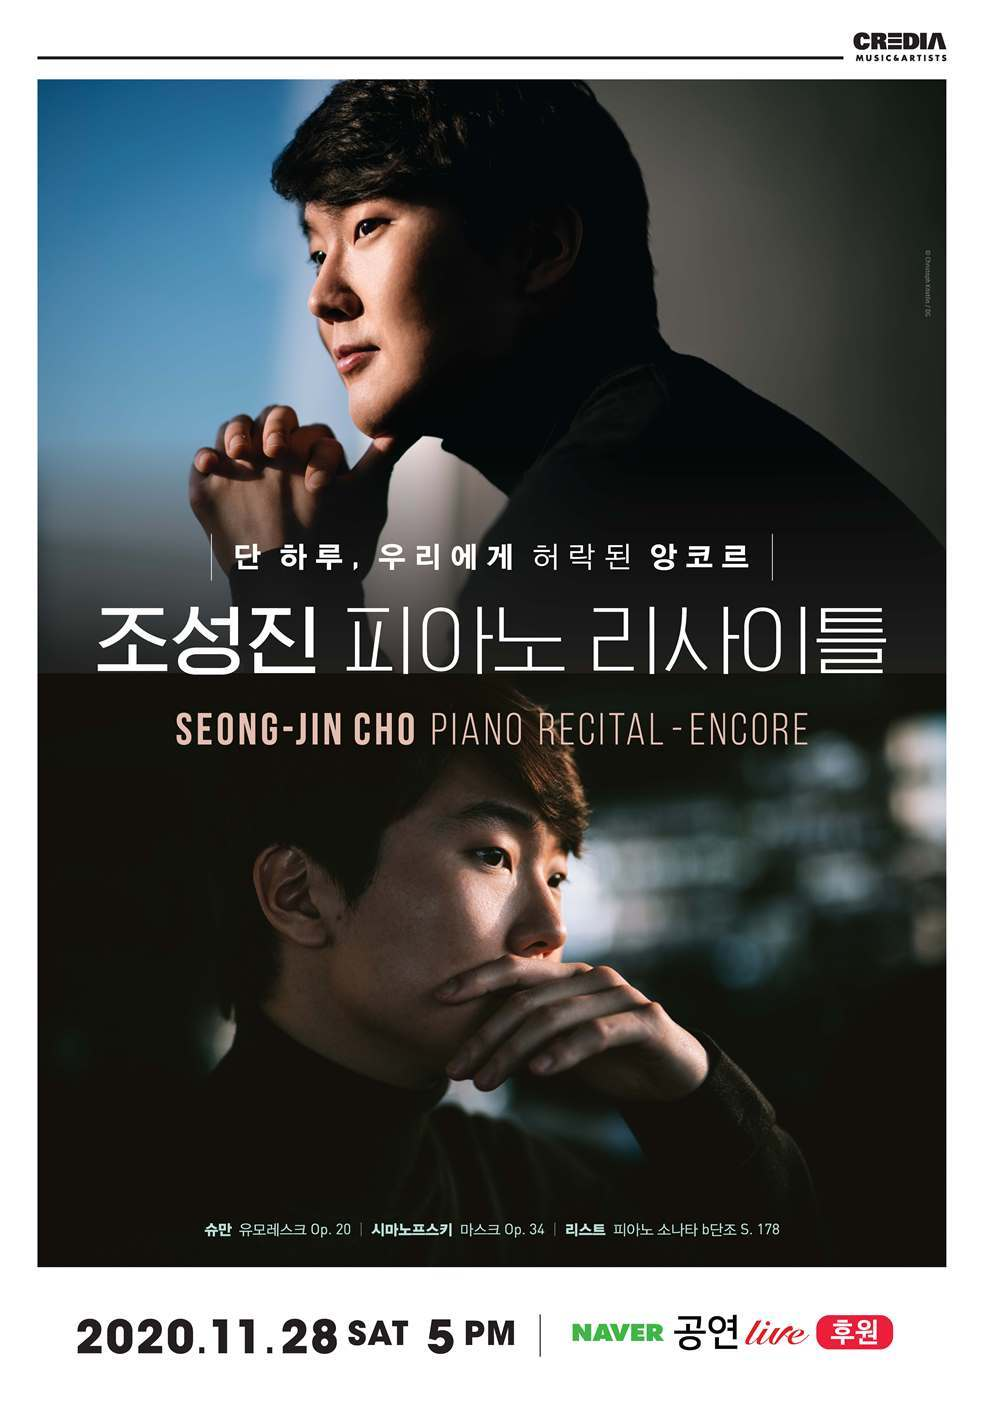 Poster image for Cho Seung-jin's recital at the Seoul Arts Center on Saturday (Credia)